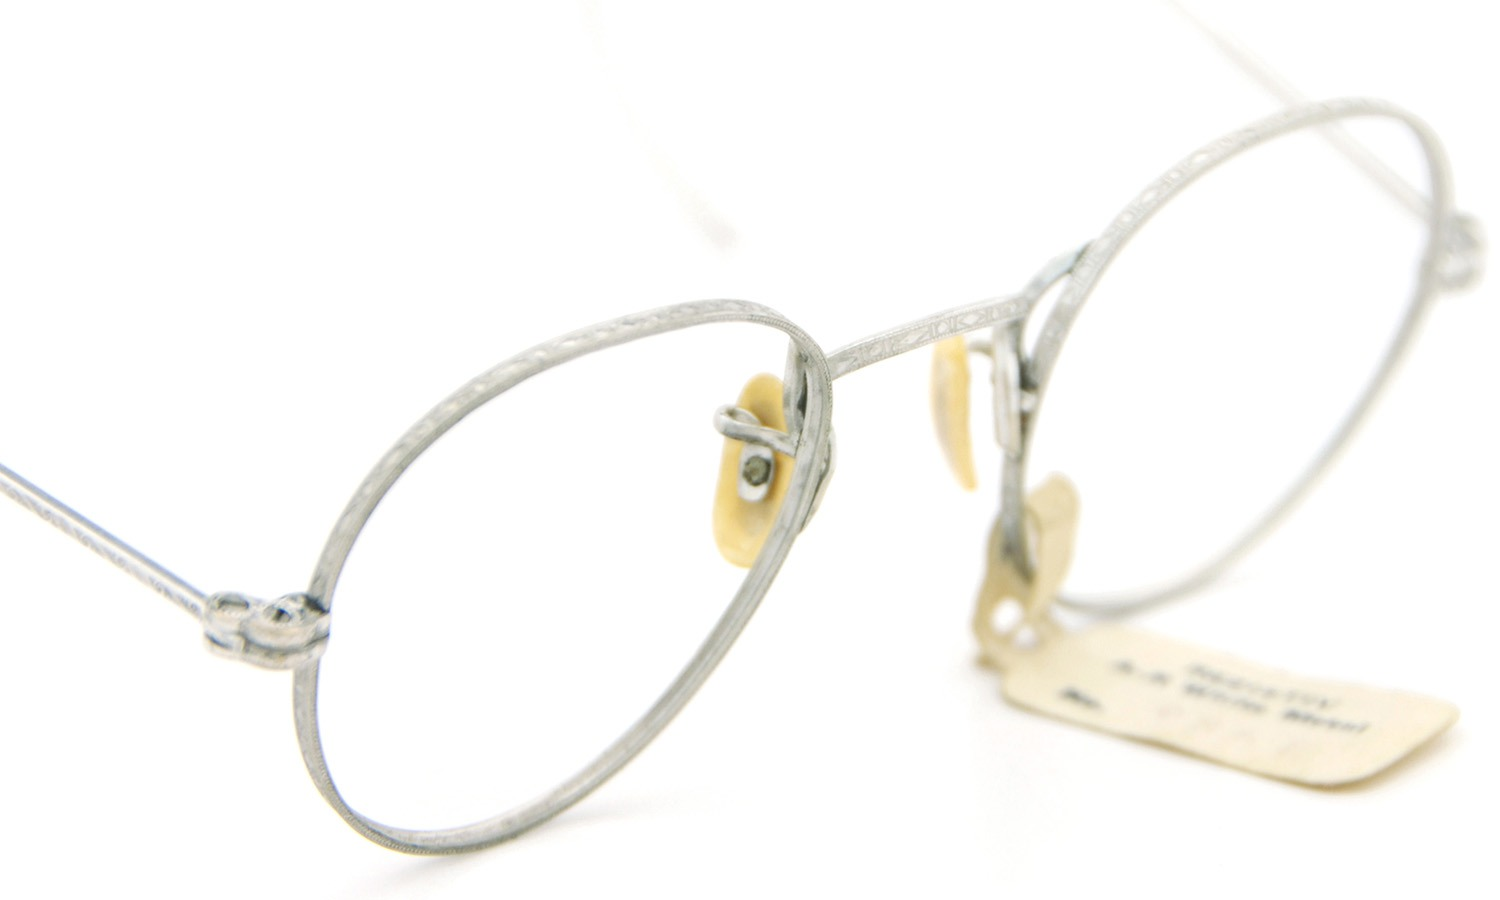 American vintage アメリカン ヴィンテージ メガネ 1930年代 REZISTIV PANTO 1/10 12kGF MASHWOOD CENTER-POINT col.White-Gold 42-21 6